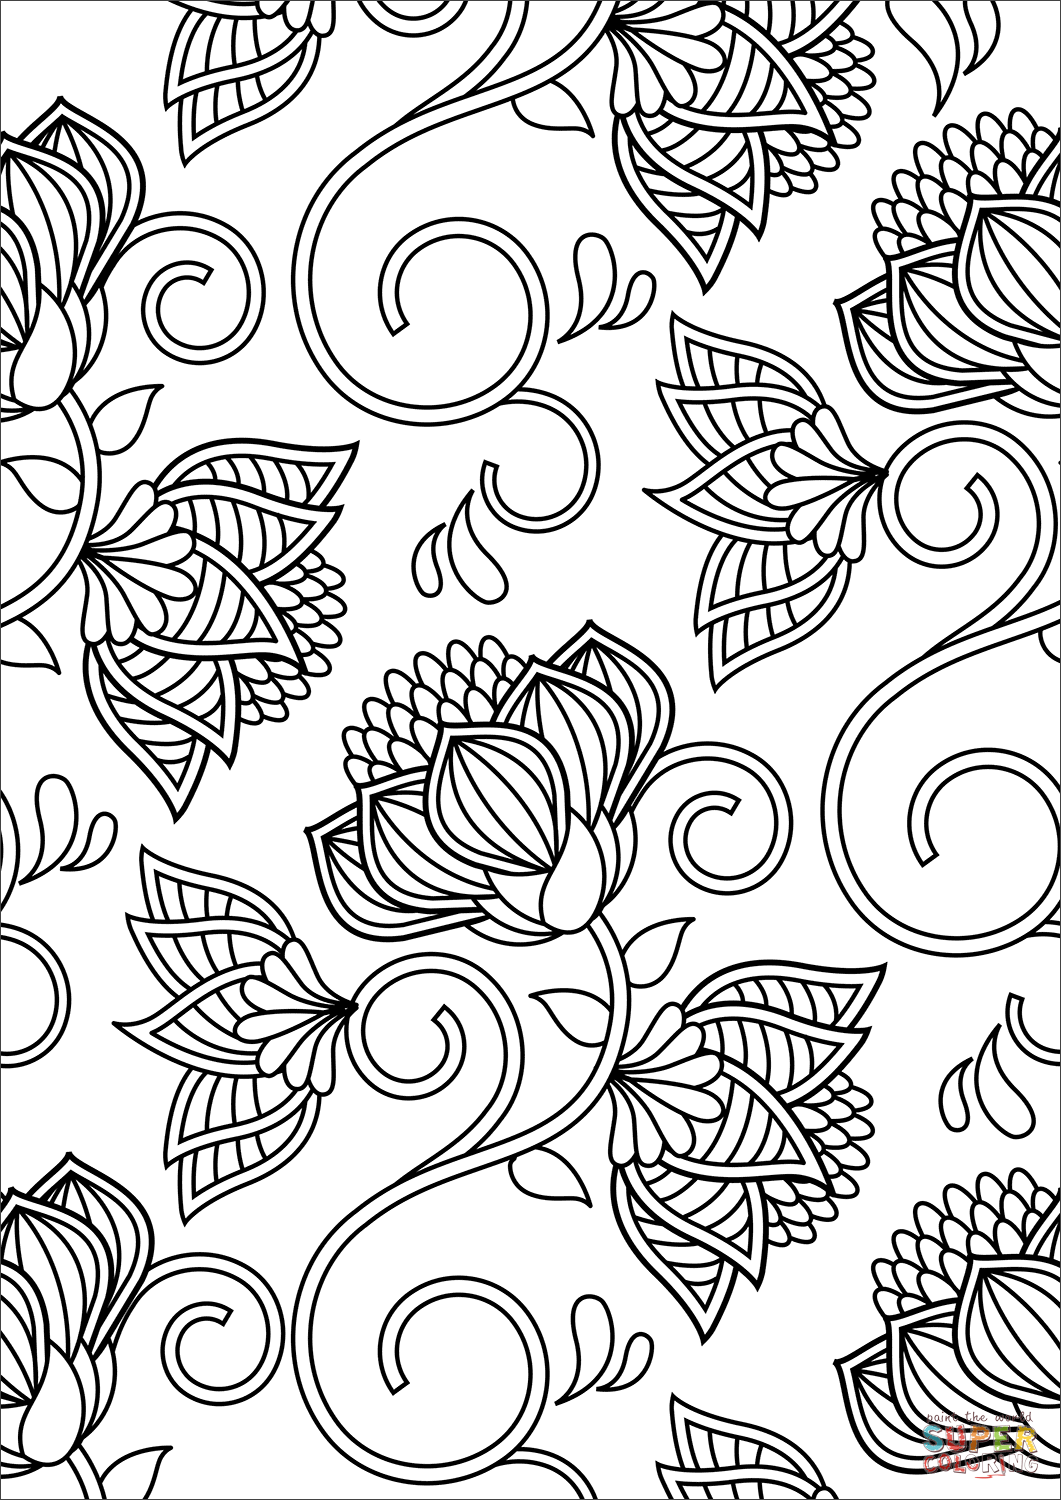 flower pattern coloring pages coloring page world paisley flower pattern portrait flower pattern pages coloring